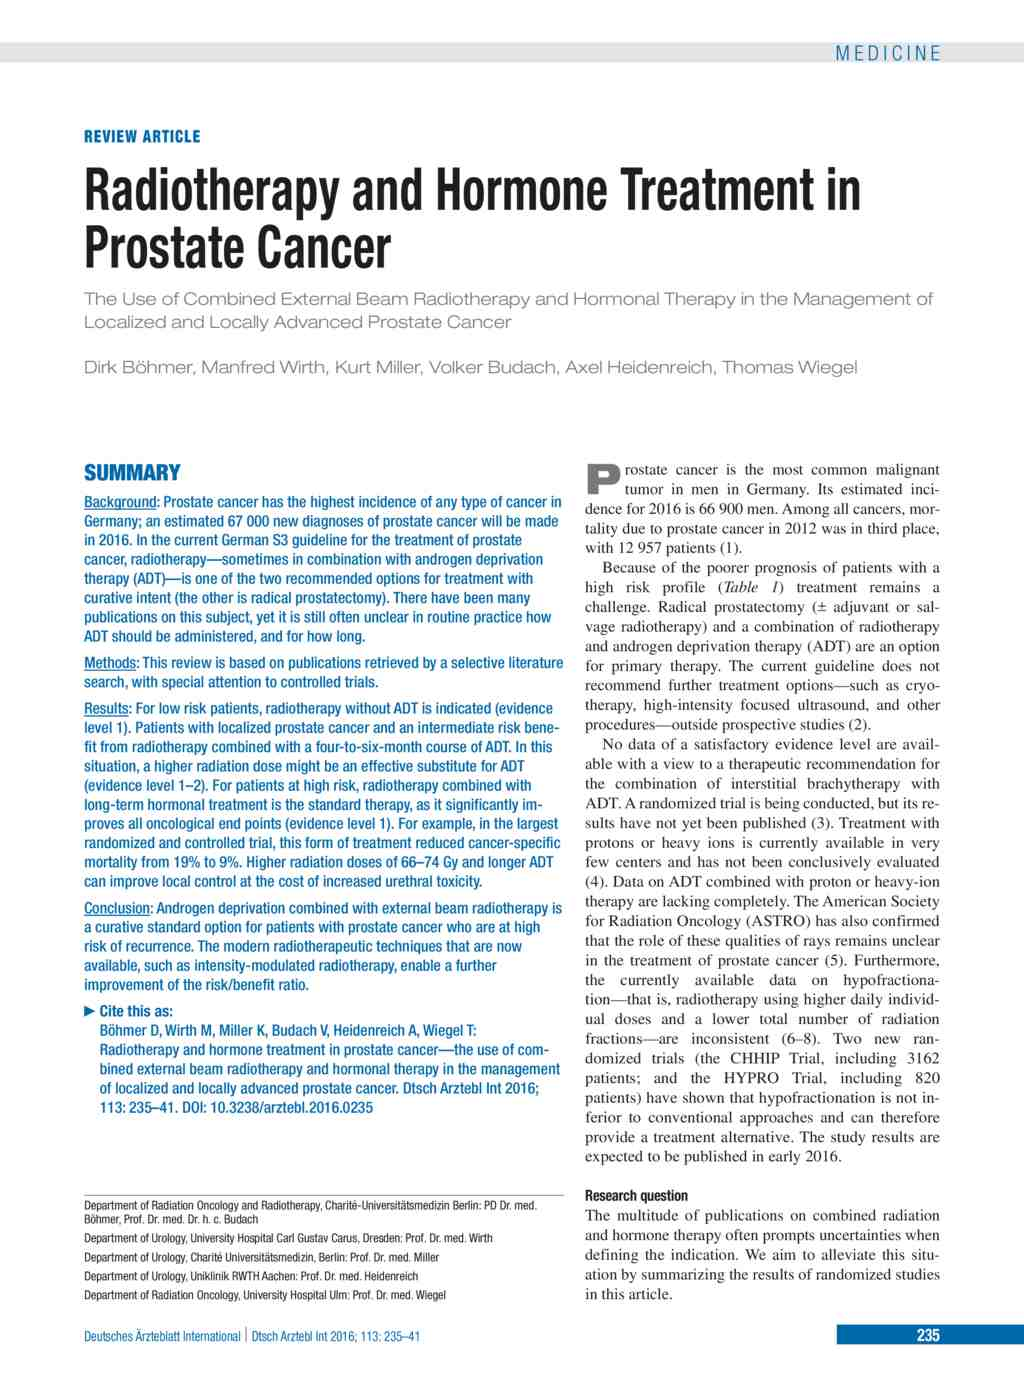 Radiotherapy And Hormone Treatment In Prostate Cancer 08